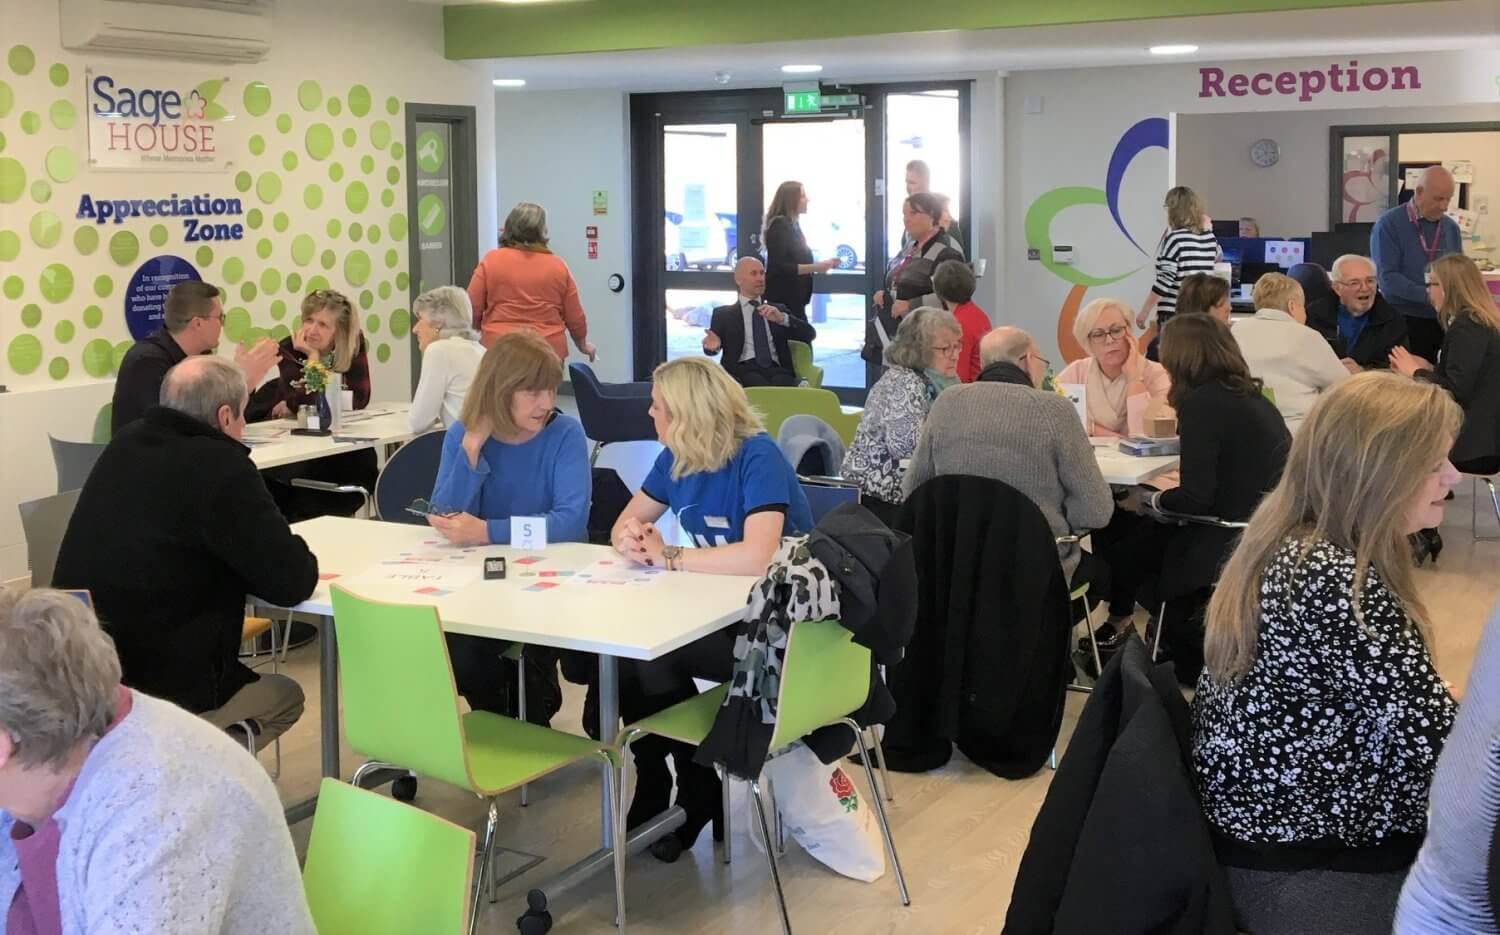 Local businesses support dementia at Sage House